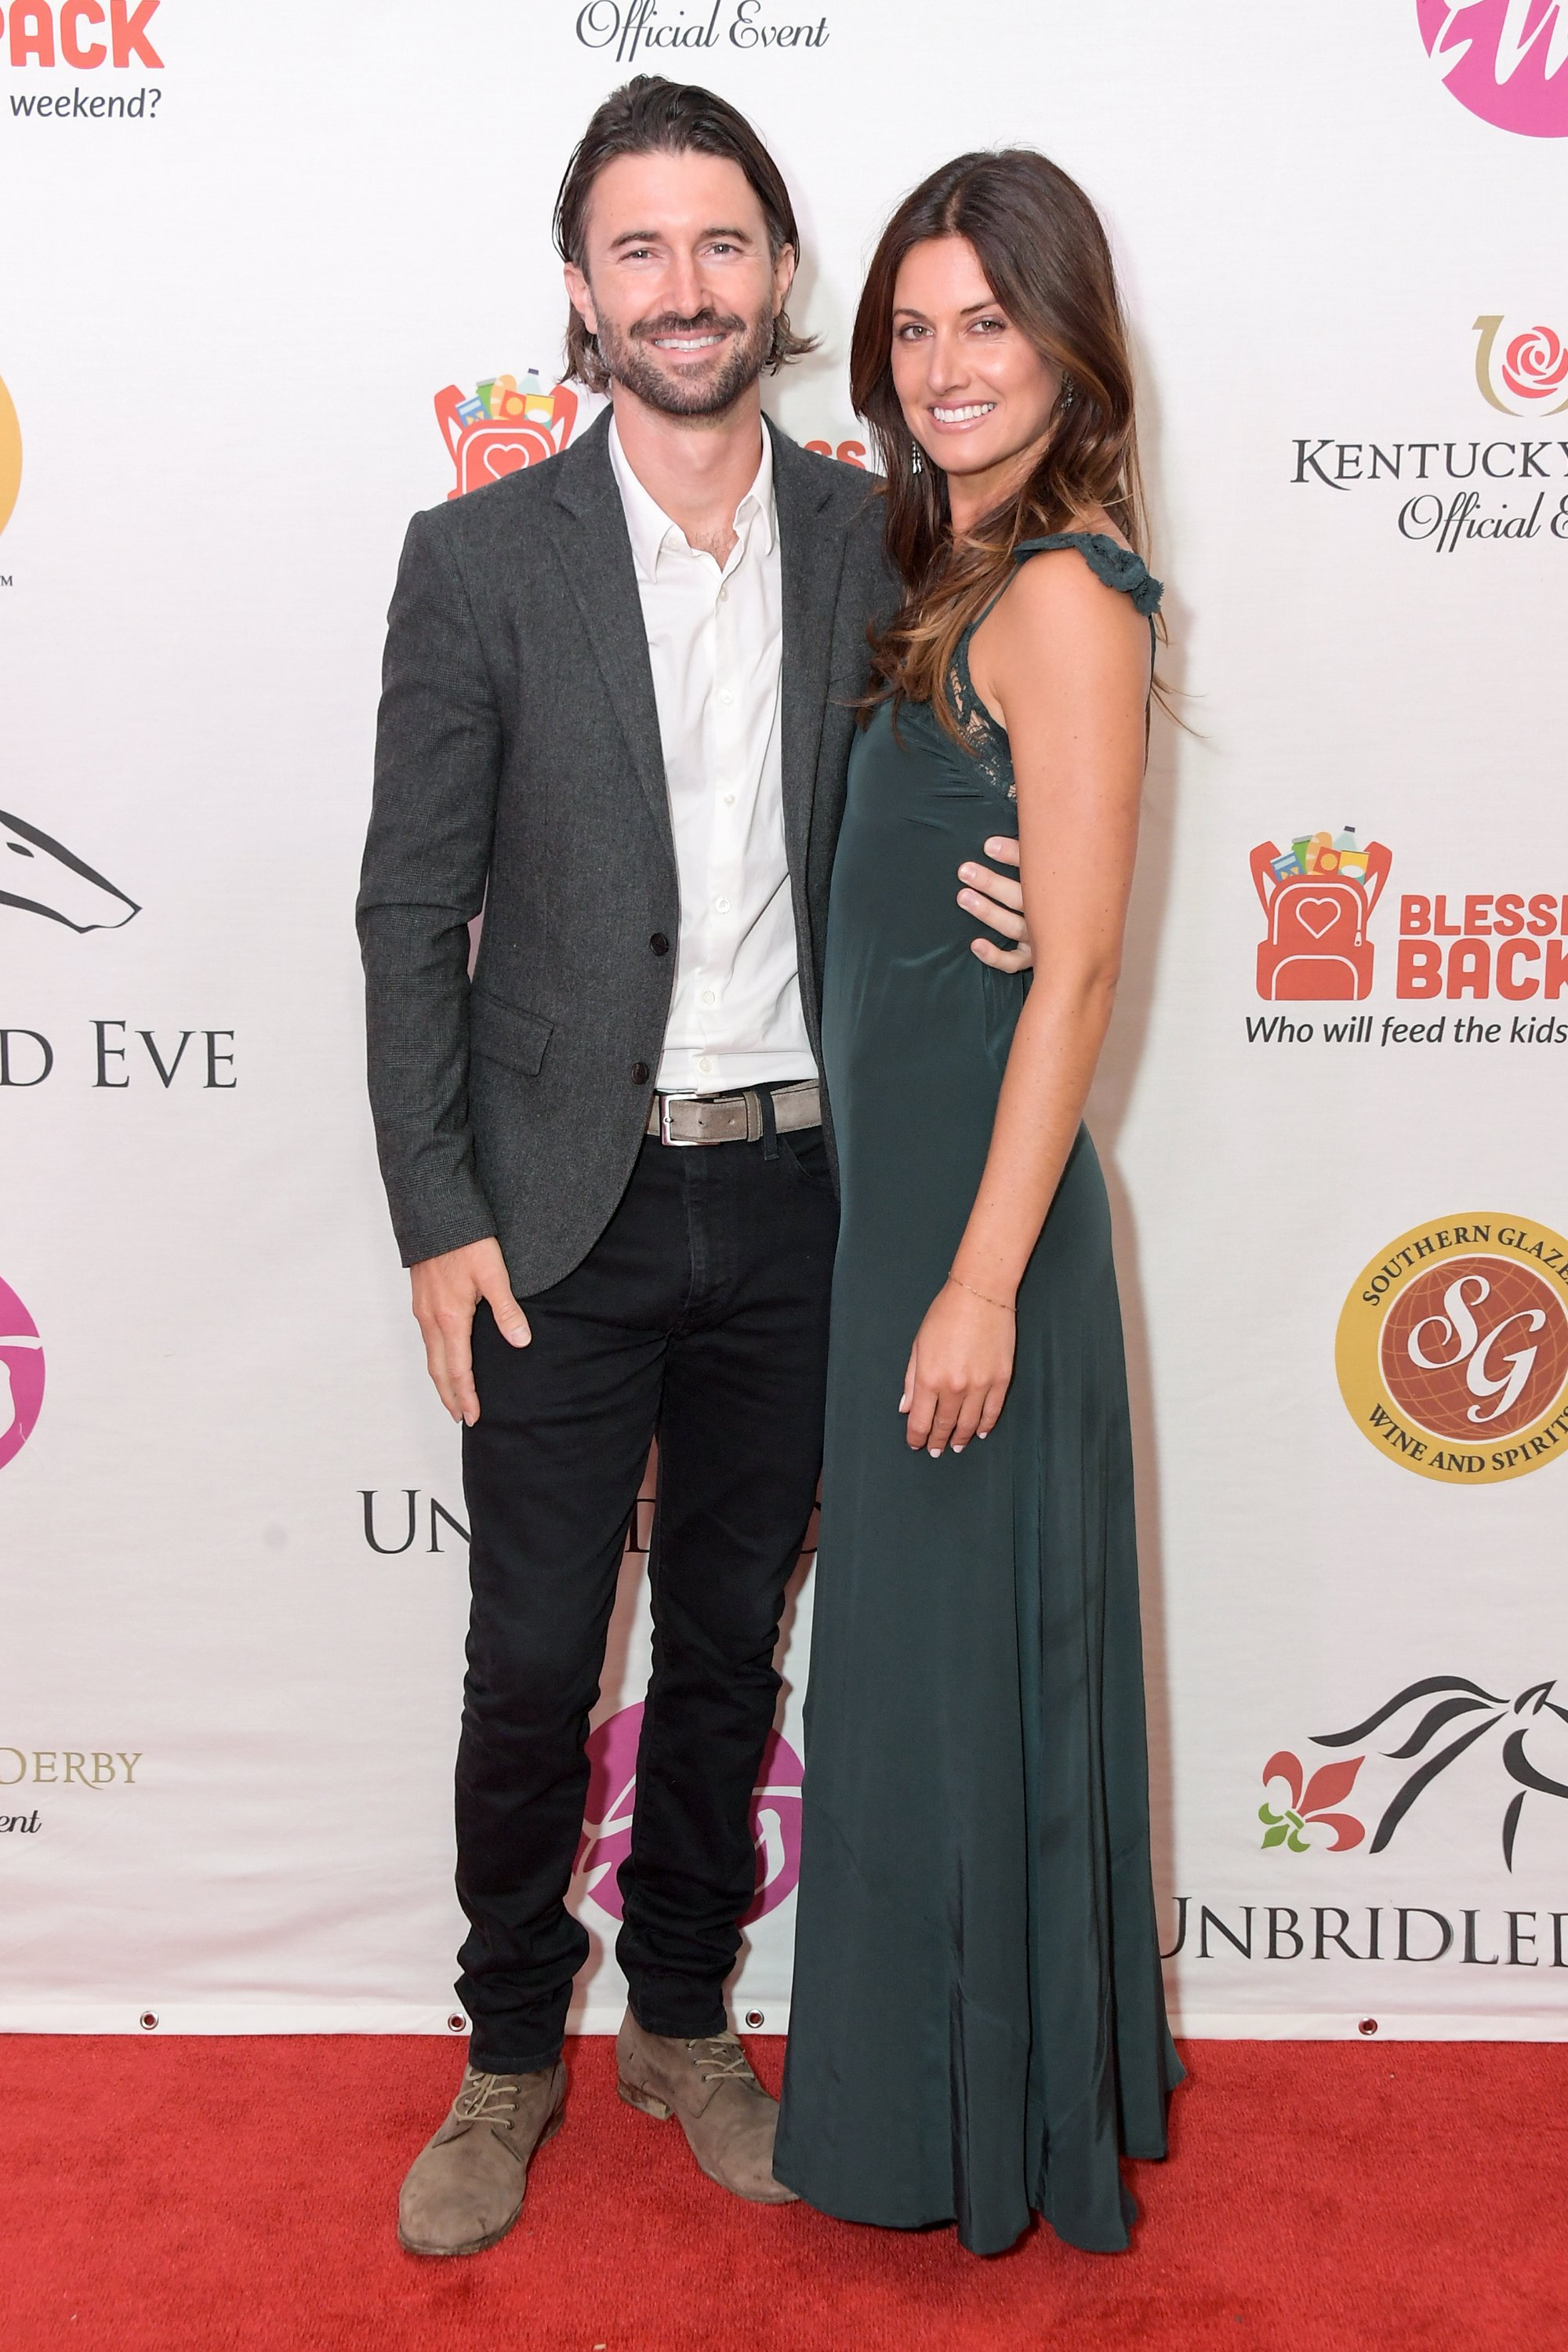 Brandon Jenner and Cayley Stoker attend the 145th Kentucky Derby Unbridled Eve Gala on May 03, 2019, in Louisville, Kentucky. | Source: Getty Images.